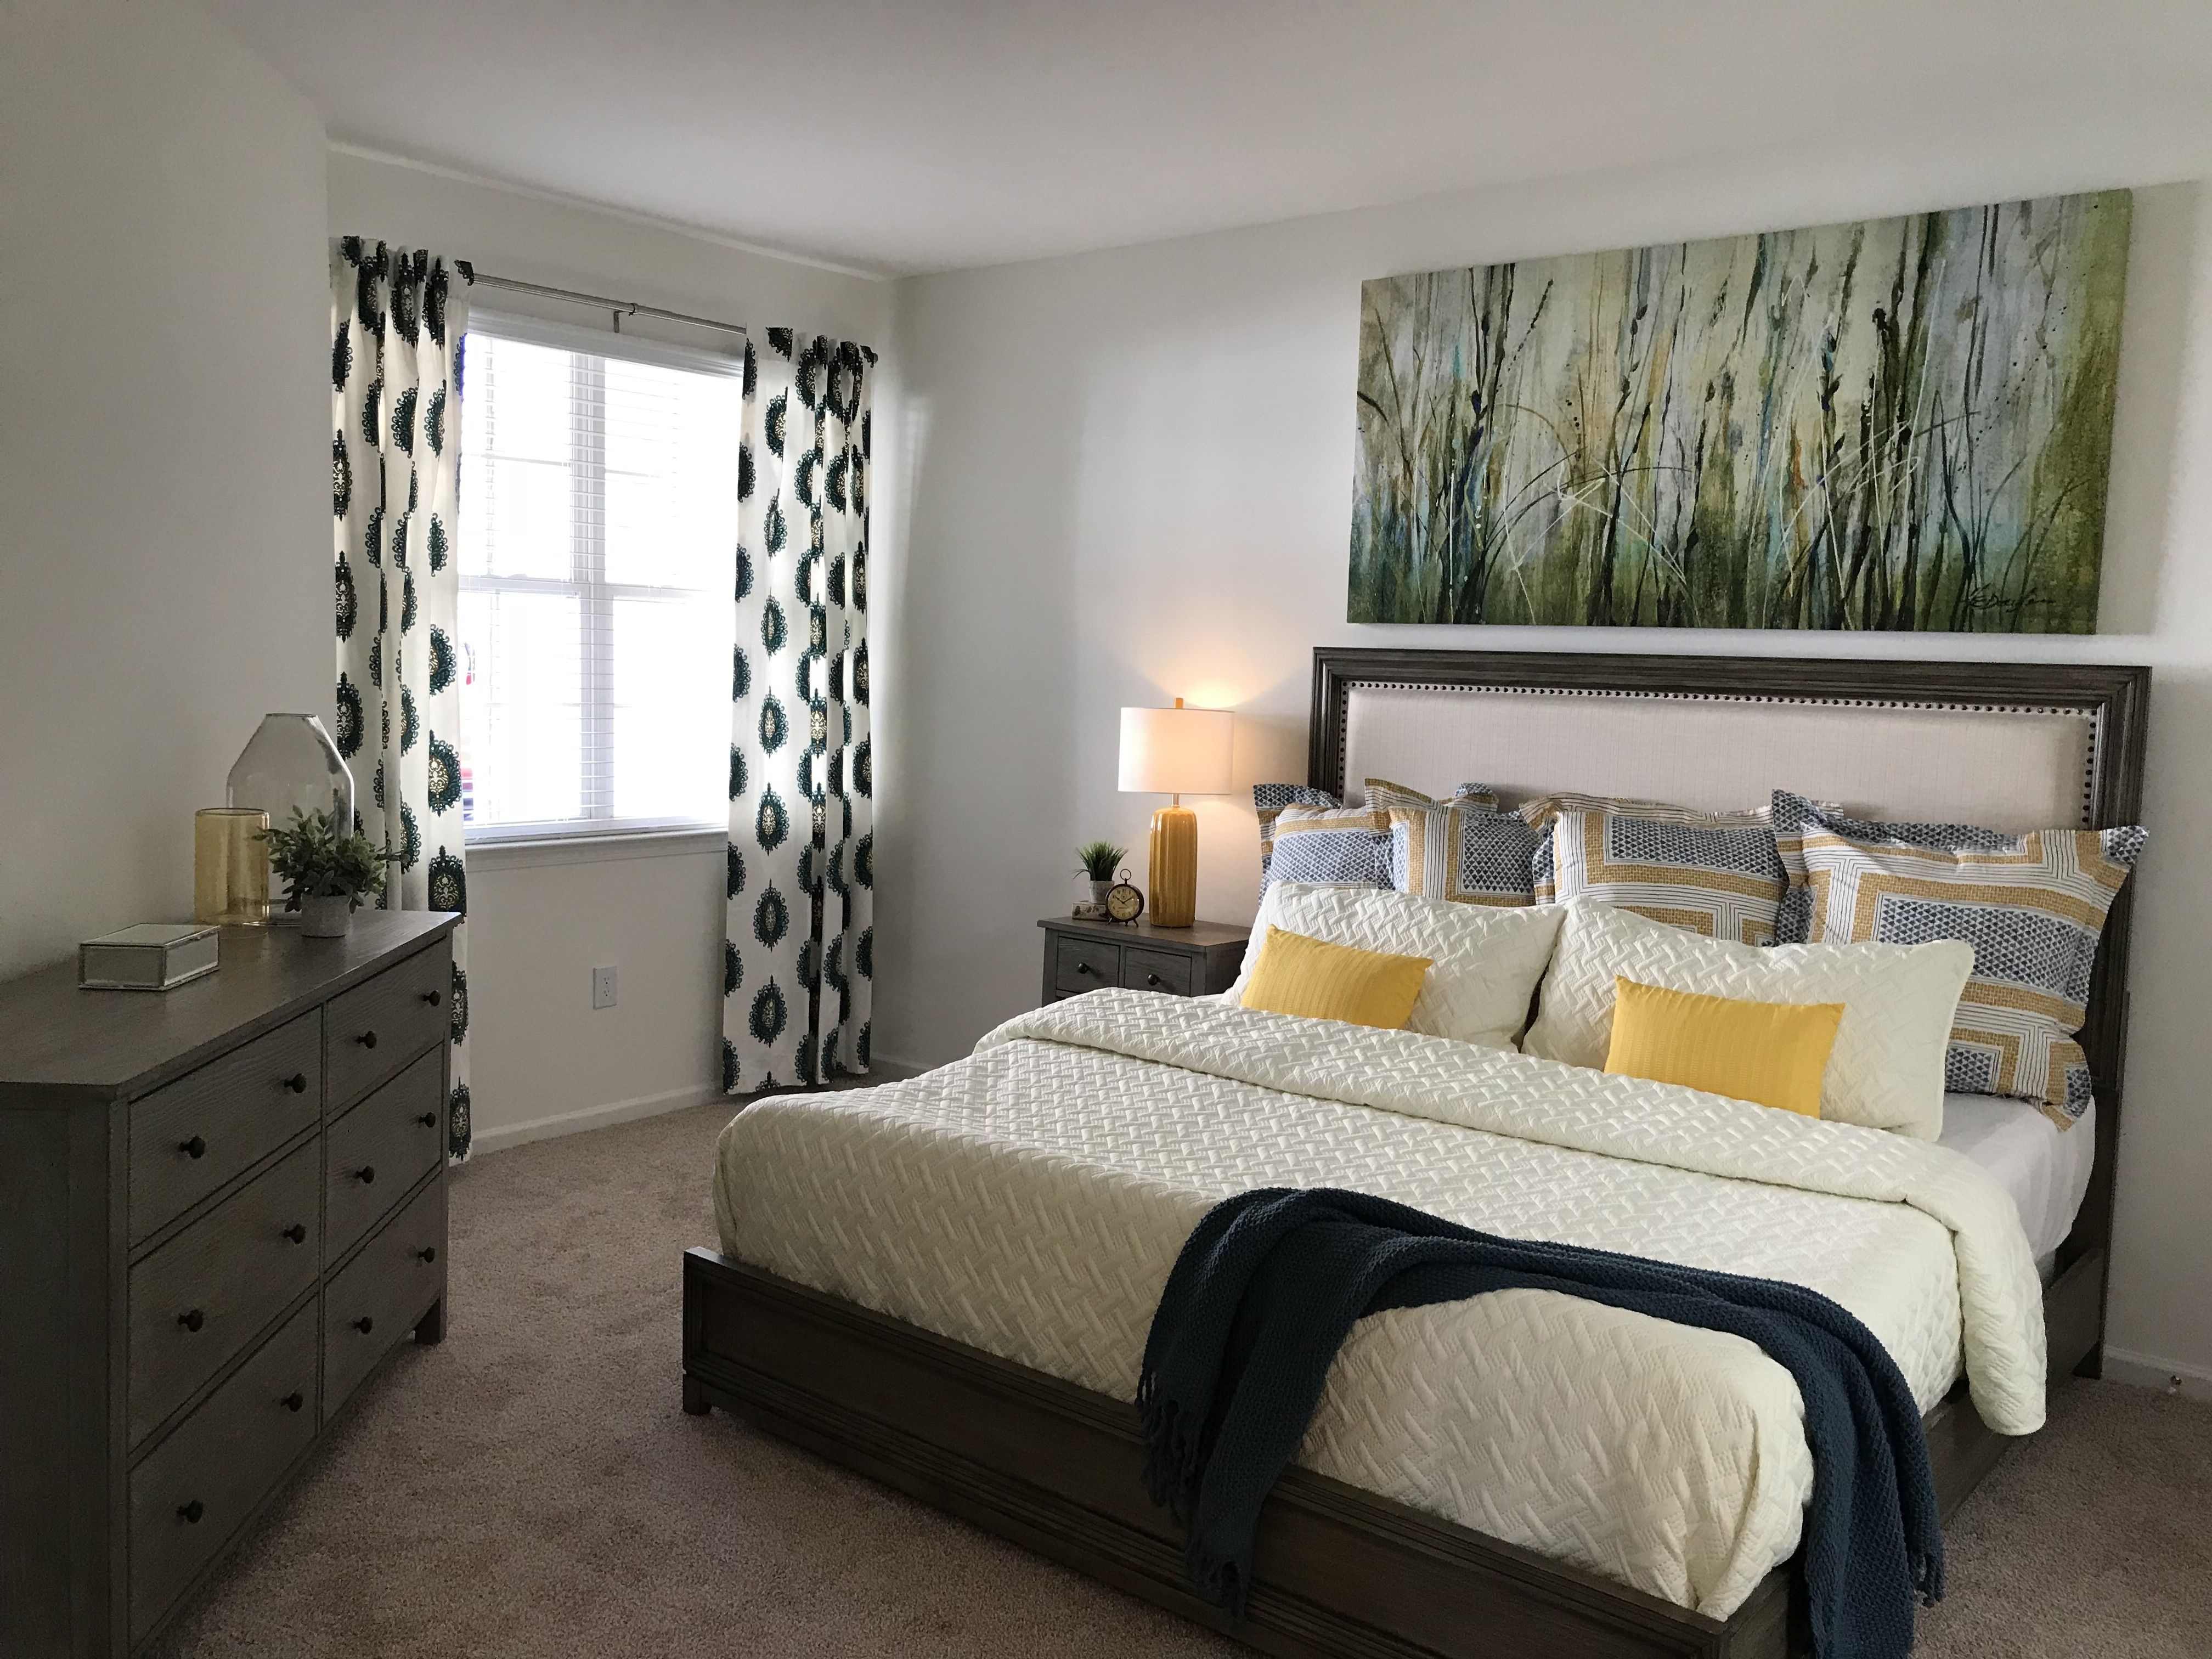 One Bedroom Apartments For Rent In Limerick Pa One Bedroom